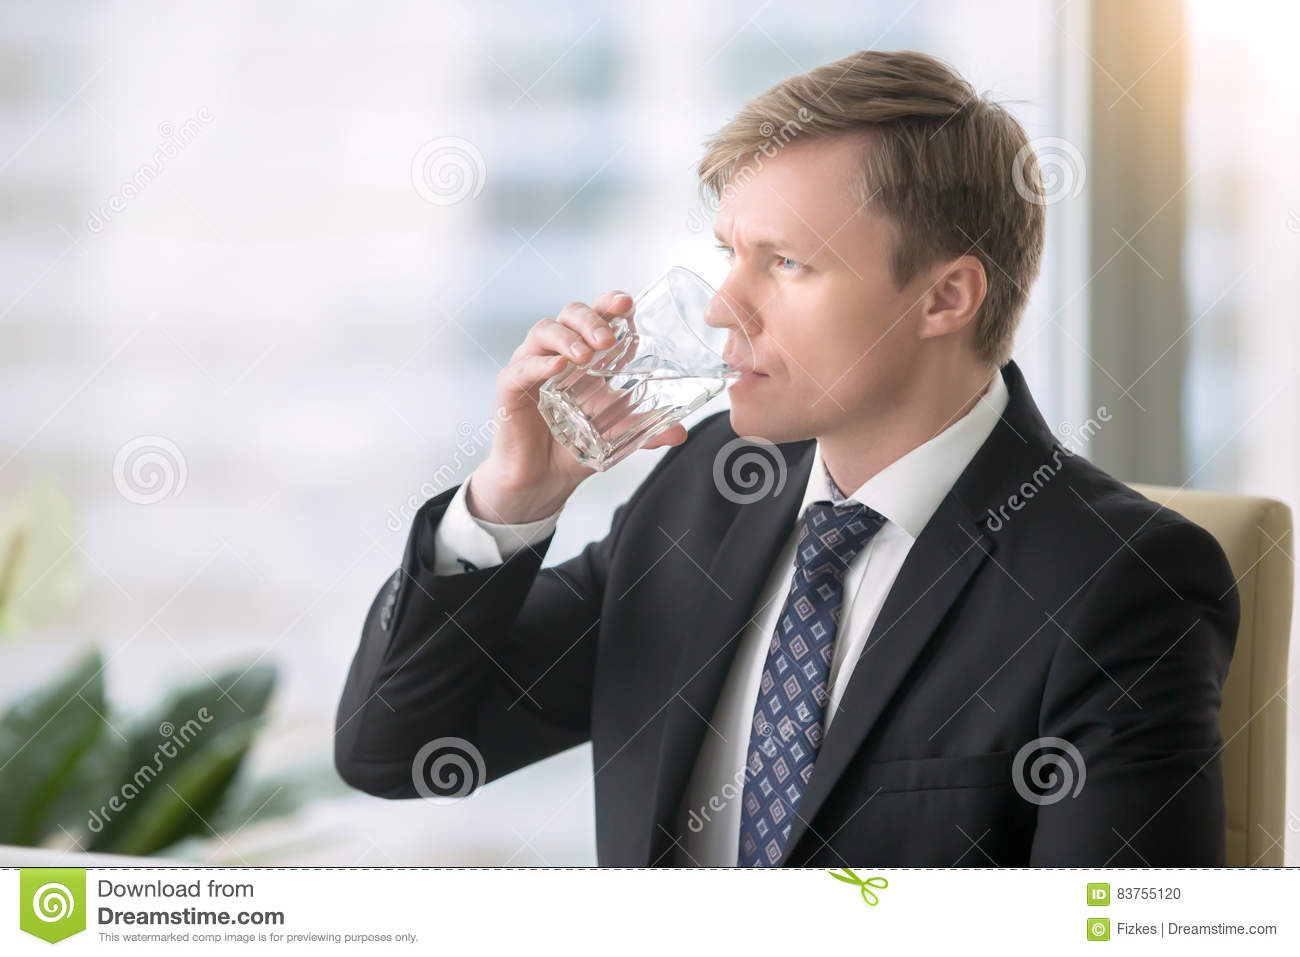 Businessman drinking water at the desk